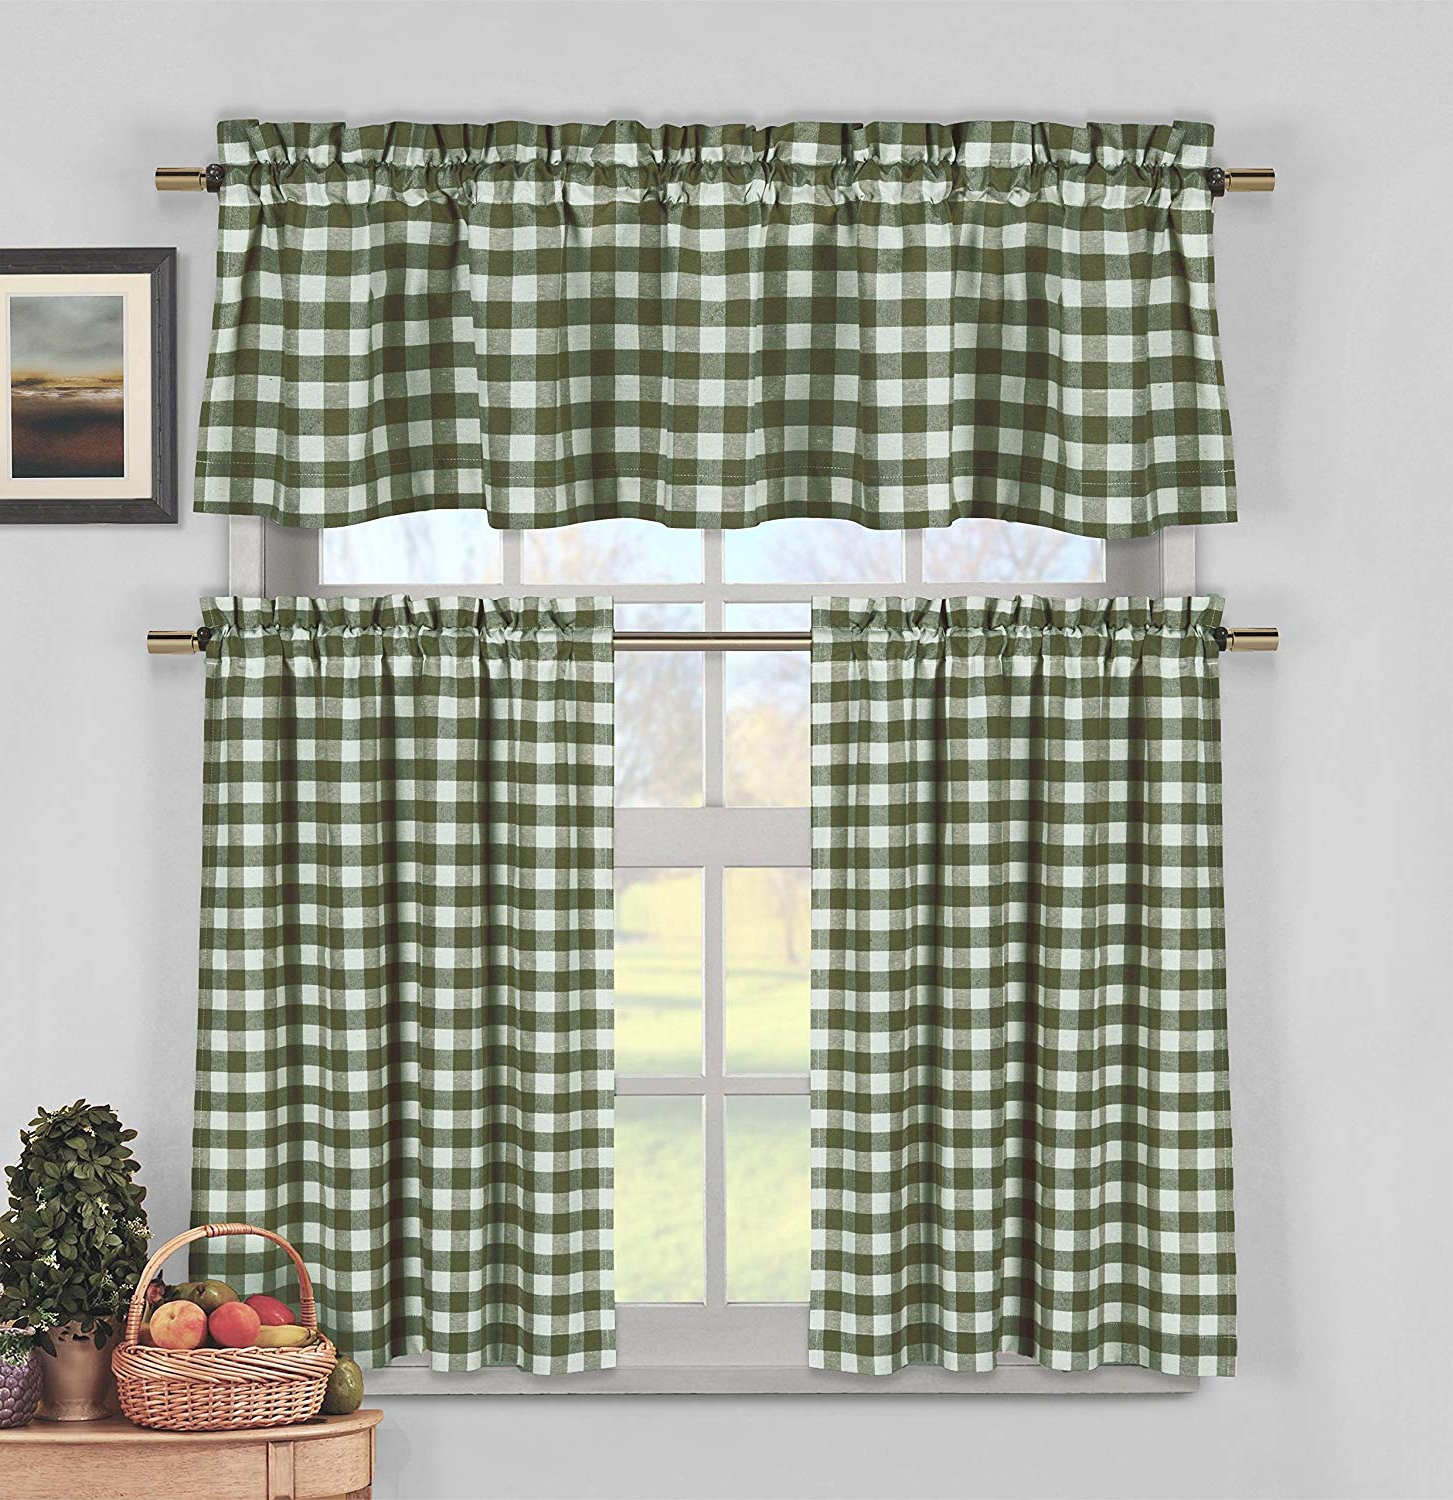 Lodge Plaid 3 Piece Kitchen Curtain Tier And Valance Sets Throughout Well Known Sage Green 3 Piece Gingham Check Kitchen Window Curtain Set: Plaid, Cotton Rich, 1 Valance, 2 Tier Panels (matching 3 Piece Window Curtain Set) (View 4 of 20)